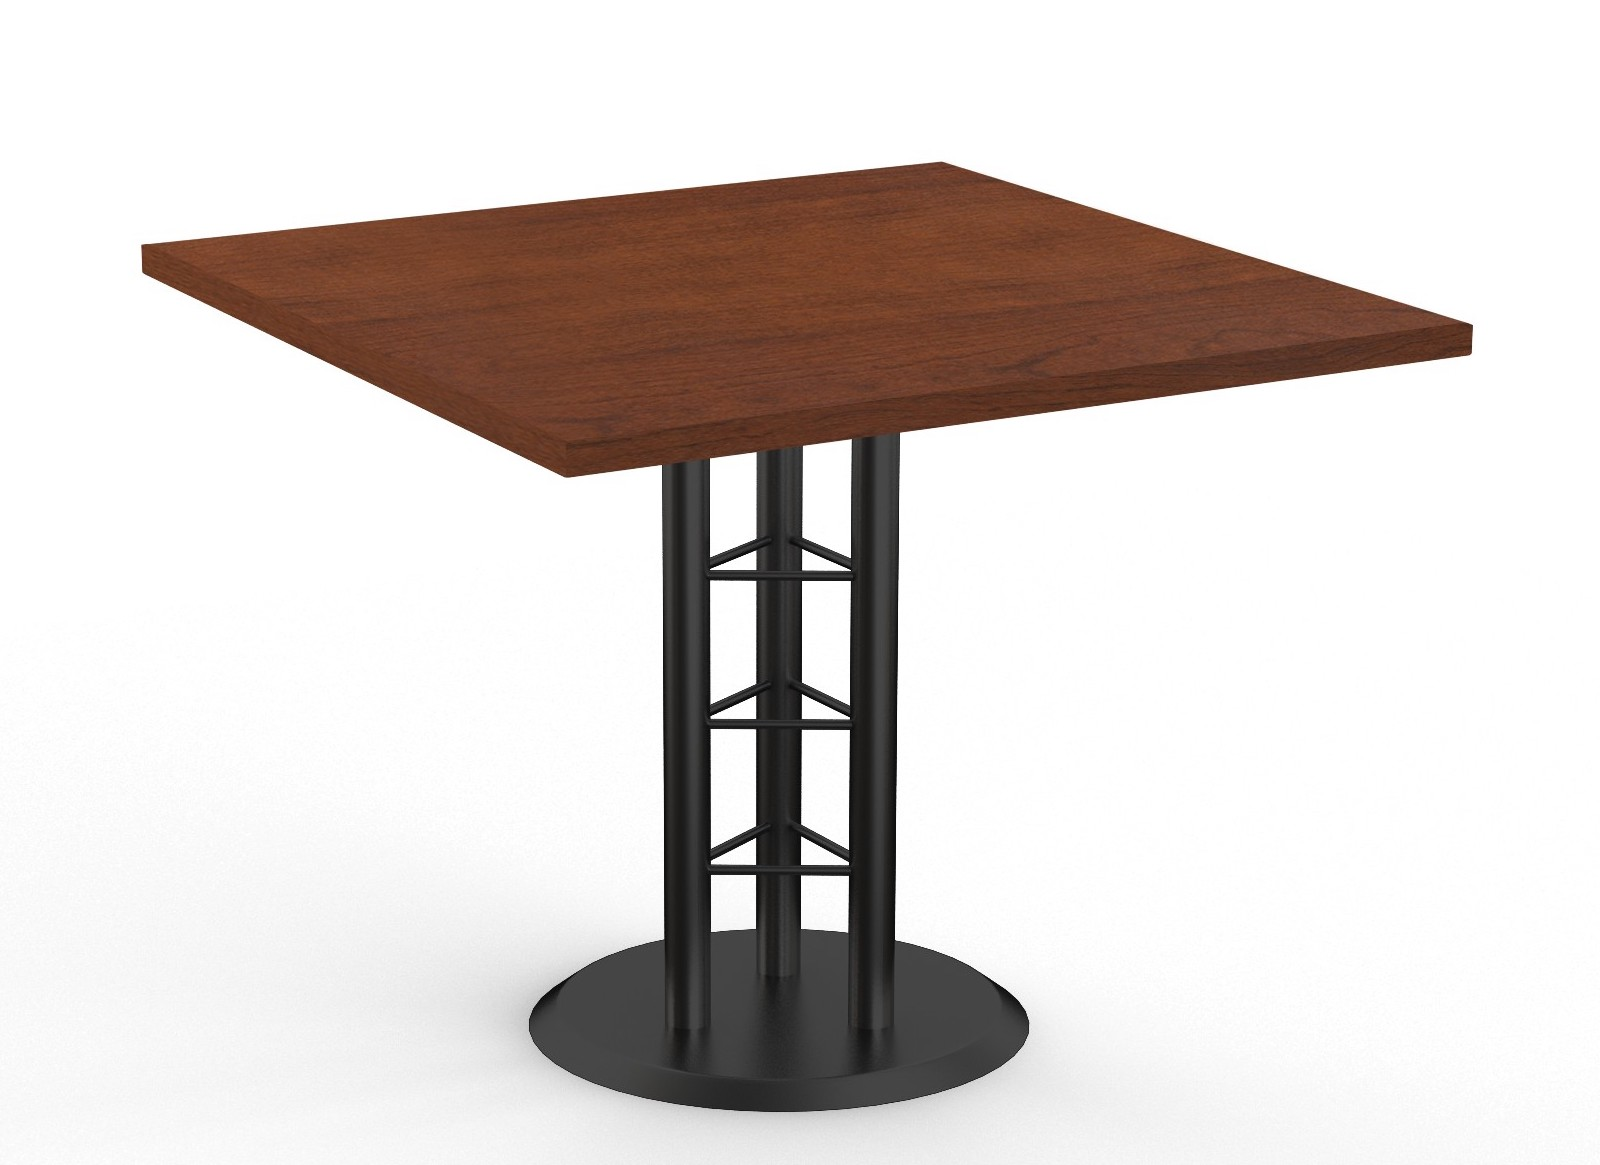 special-t success table in mahogany